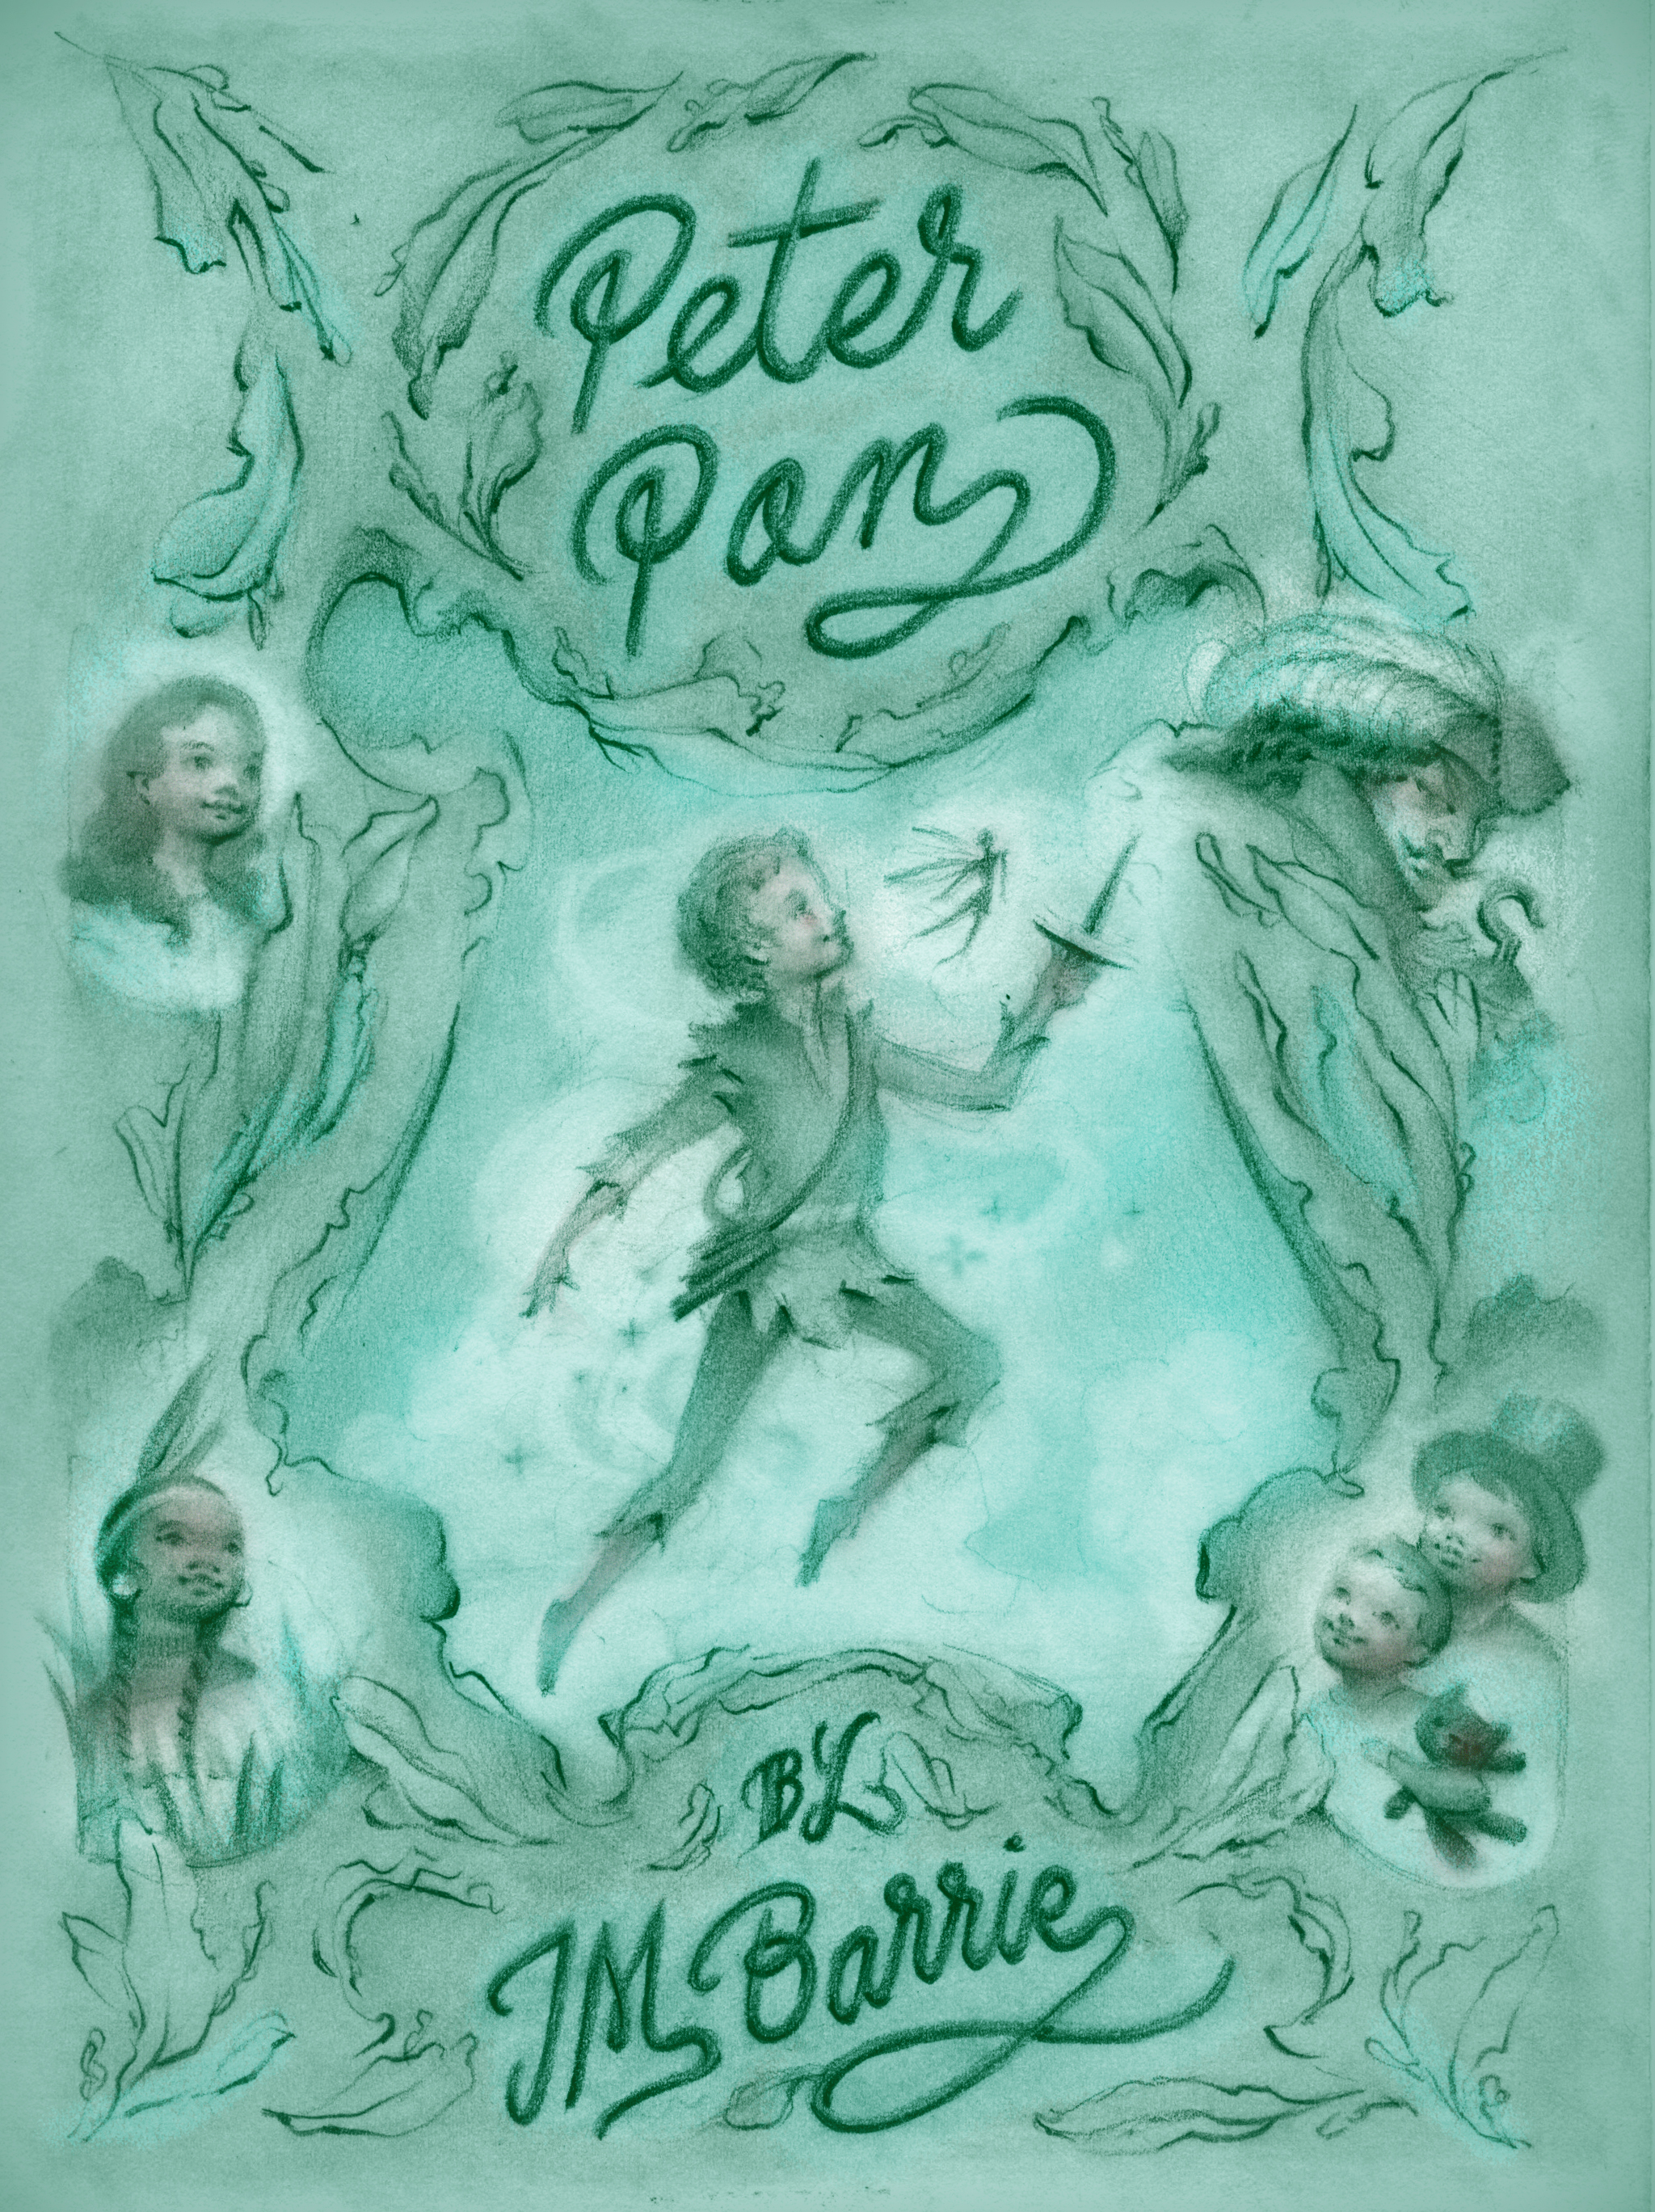 Peter Pan book cover illustration and design by Laura Dreyer.